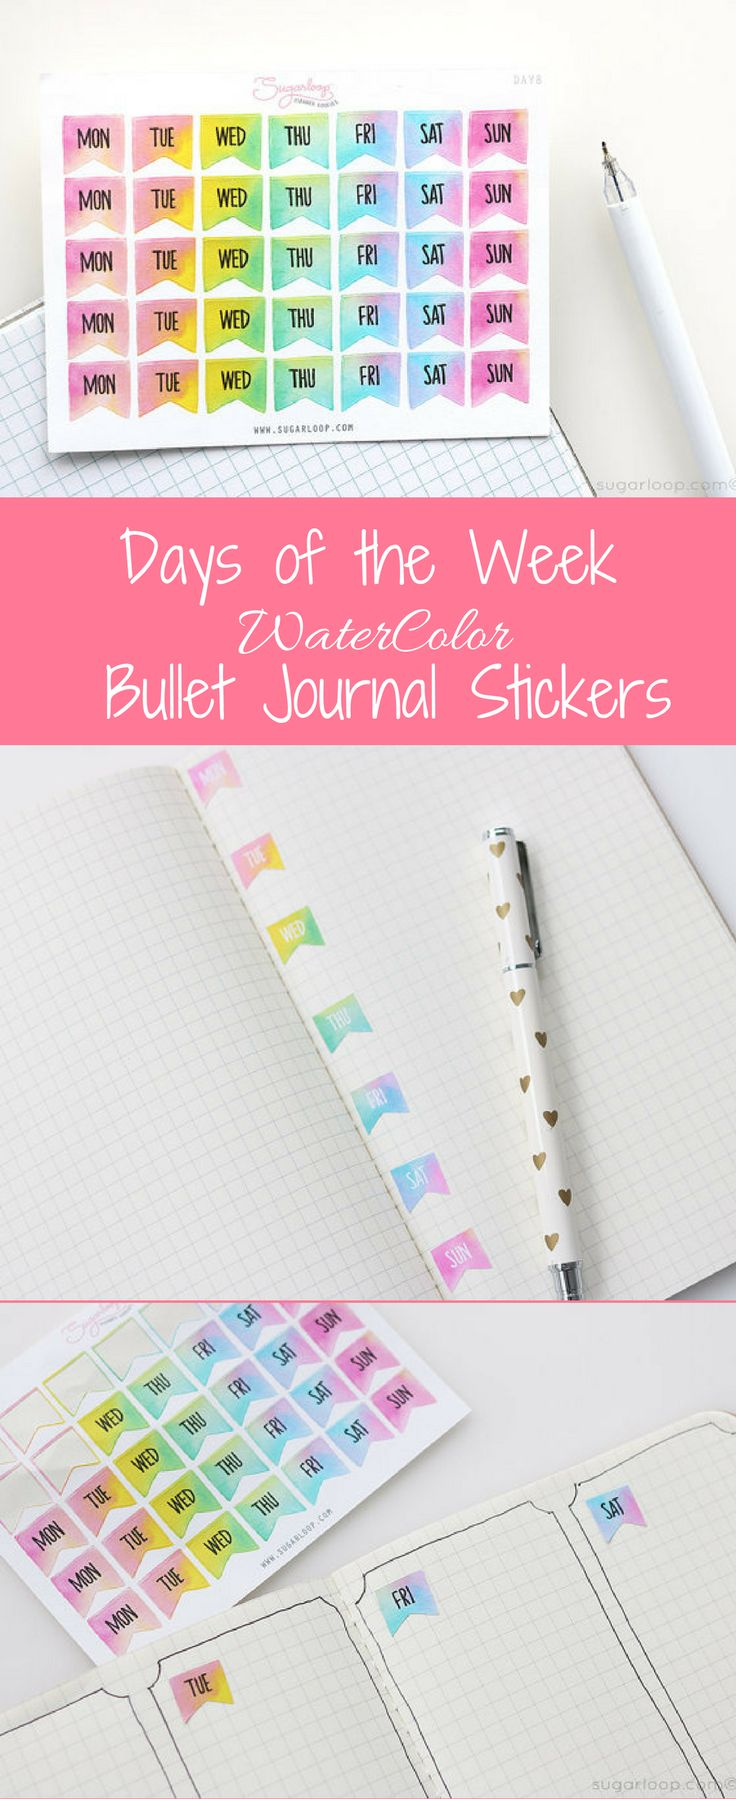 Days of the week water color bullet journal stickers #BulletJournal #BuJo #Planner #Organized #ToDo #DecorativePlannerStickers #WaterColor #DaysoftheWeek #Weekly #DecoStickers #Ad #Health#BossBabe #WorkatHome #WeekdayFlags #WeekdayStickers #WaterColorStickers #BulletJournalStickers #TravelersNotebook